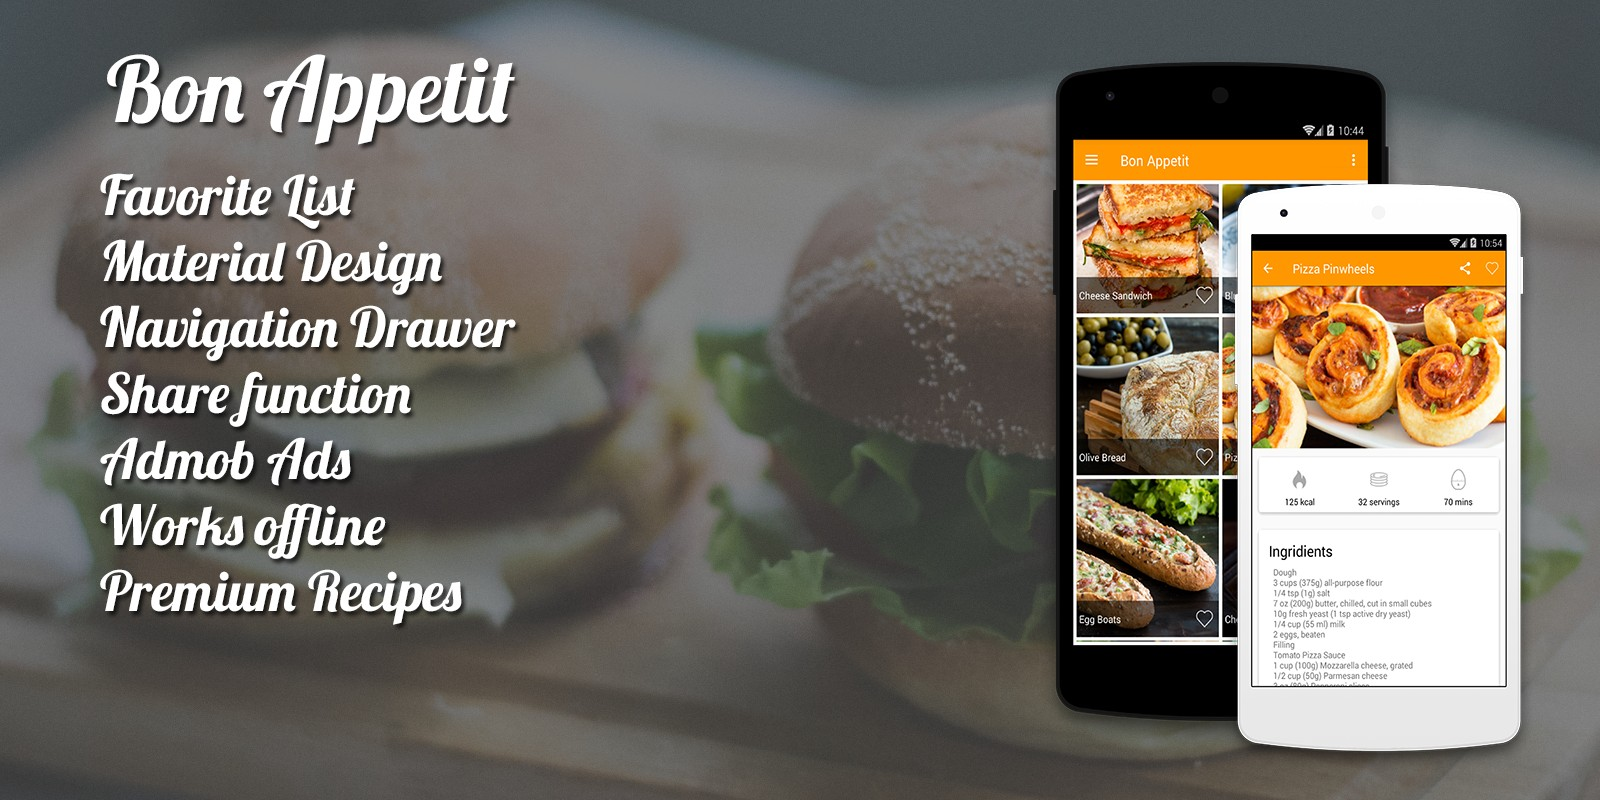 Bon appetit android recipes app source code android app bon appetit android recipes app source code forumfinder Choice Image